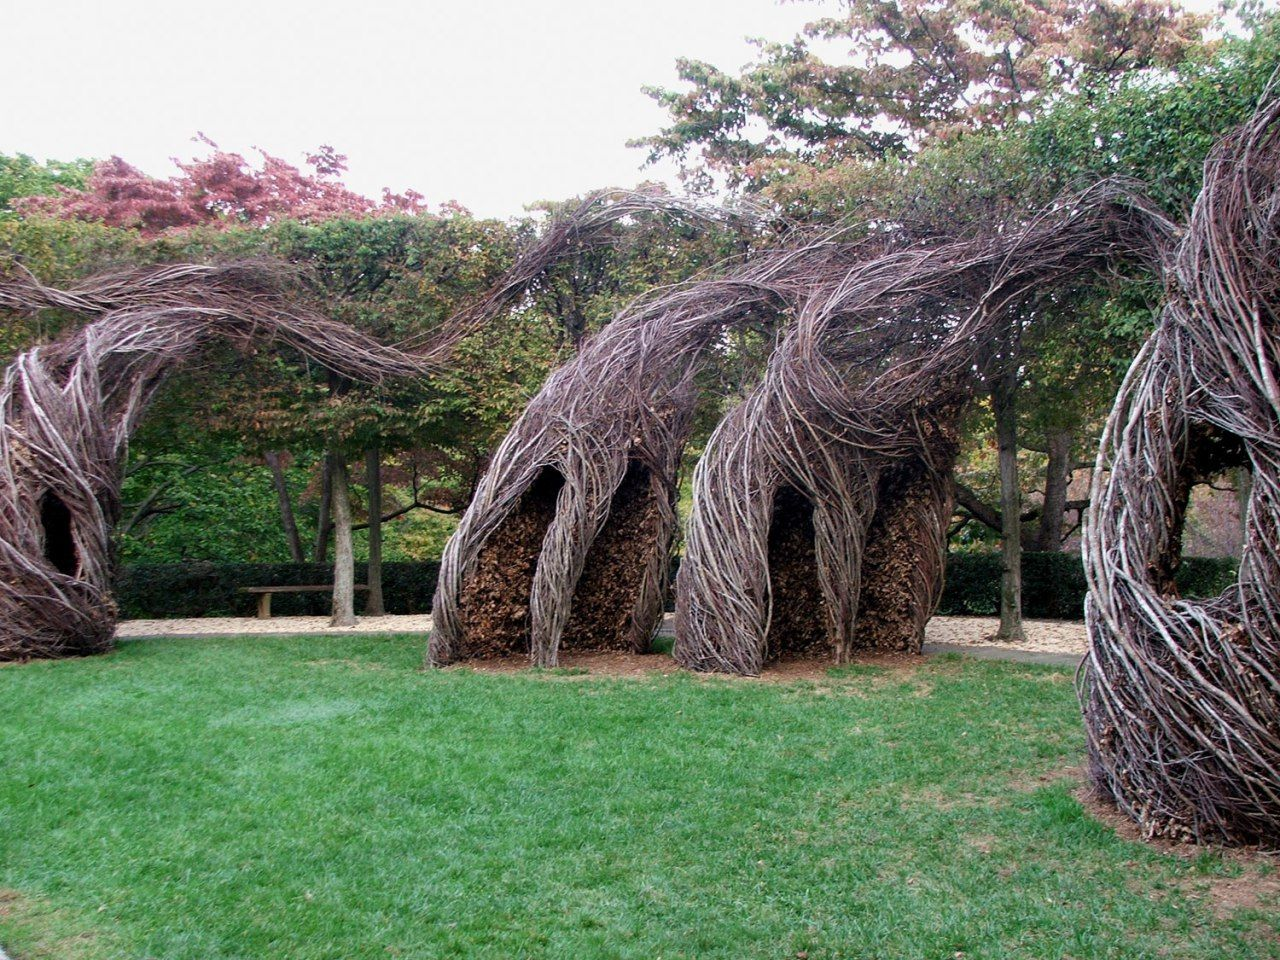 Help Build This Cool Patrick Dougherty Sculpture In Pease Park Austin Arts Seeing Things Land Art Arte Concettuale Paesaggi